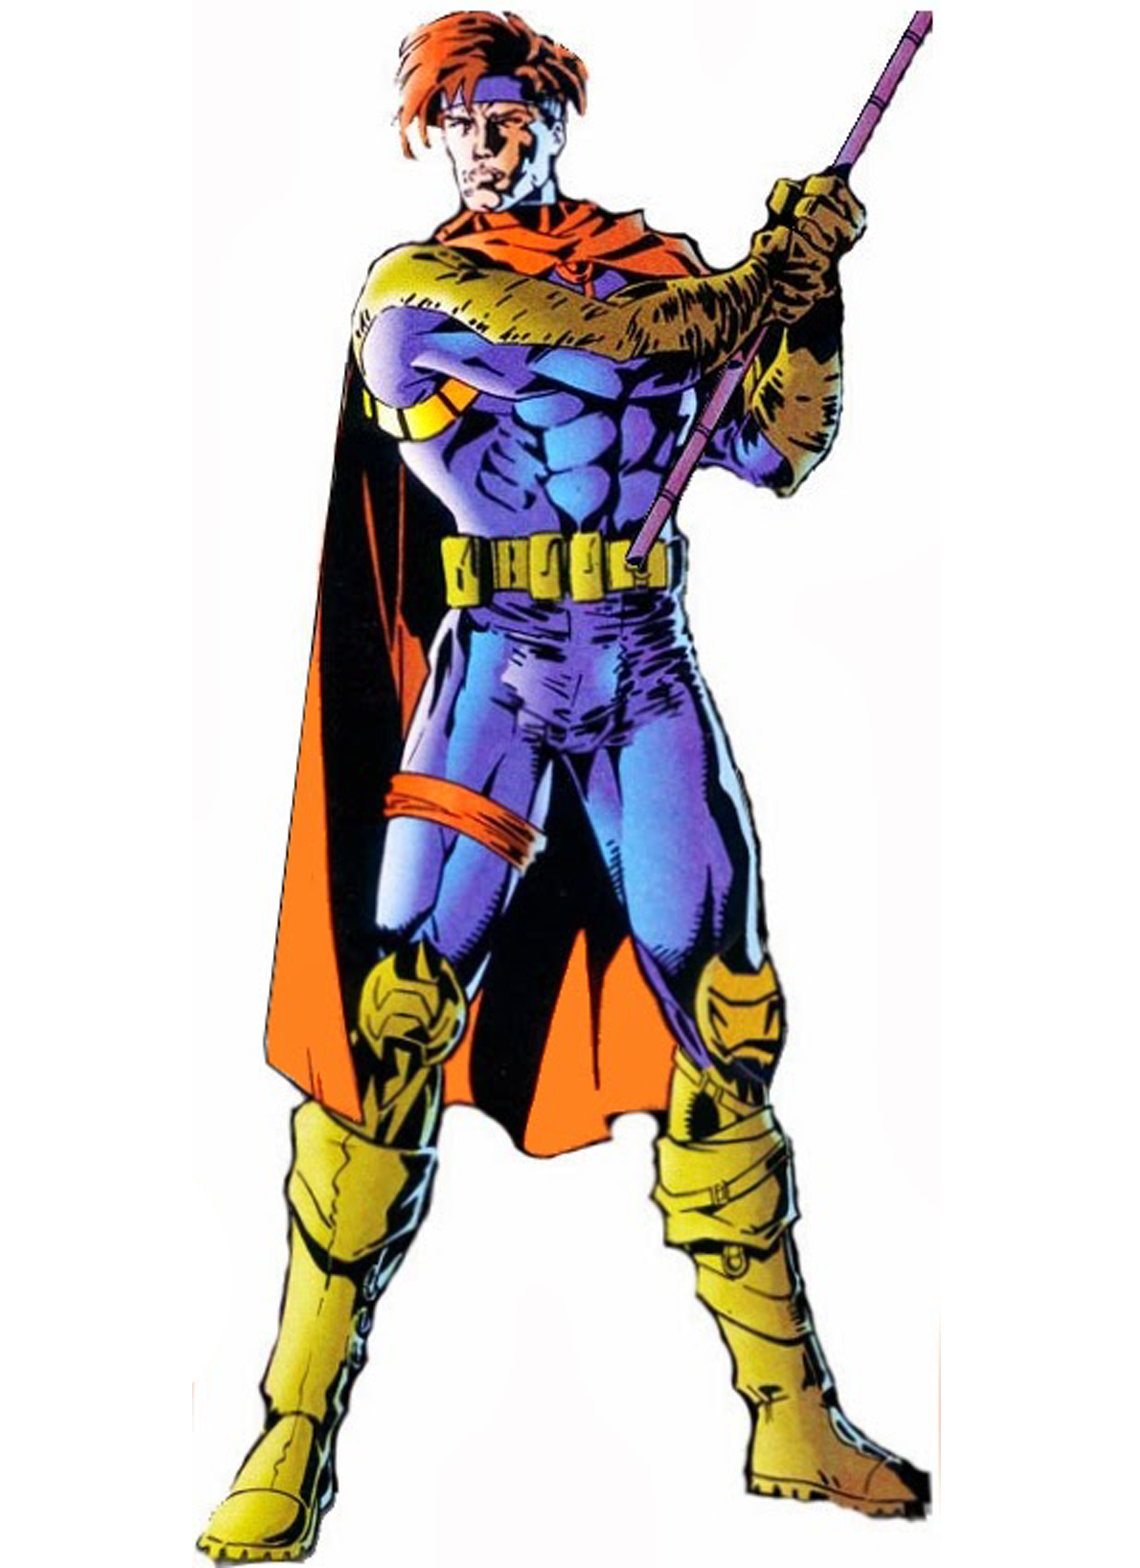 Marvel apocalypse png. Pin by brian on